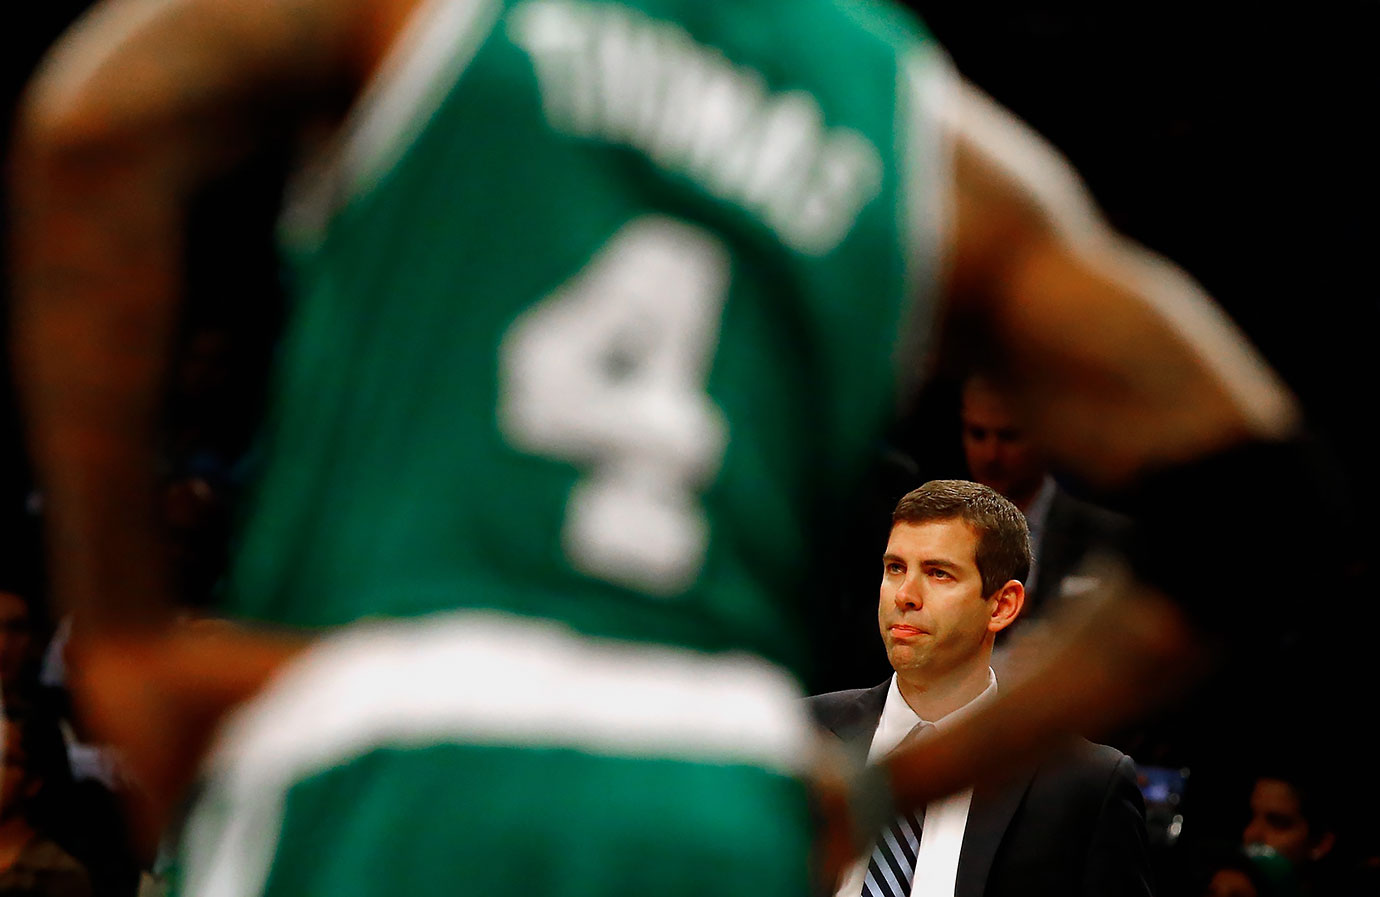 Eventually, people will realize Brad Stevens is really a 17-year-old with incredible PhotoShop skills who made an extremely believable resume in order to get hired, and the Celtics will have to let him go.